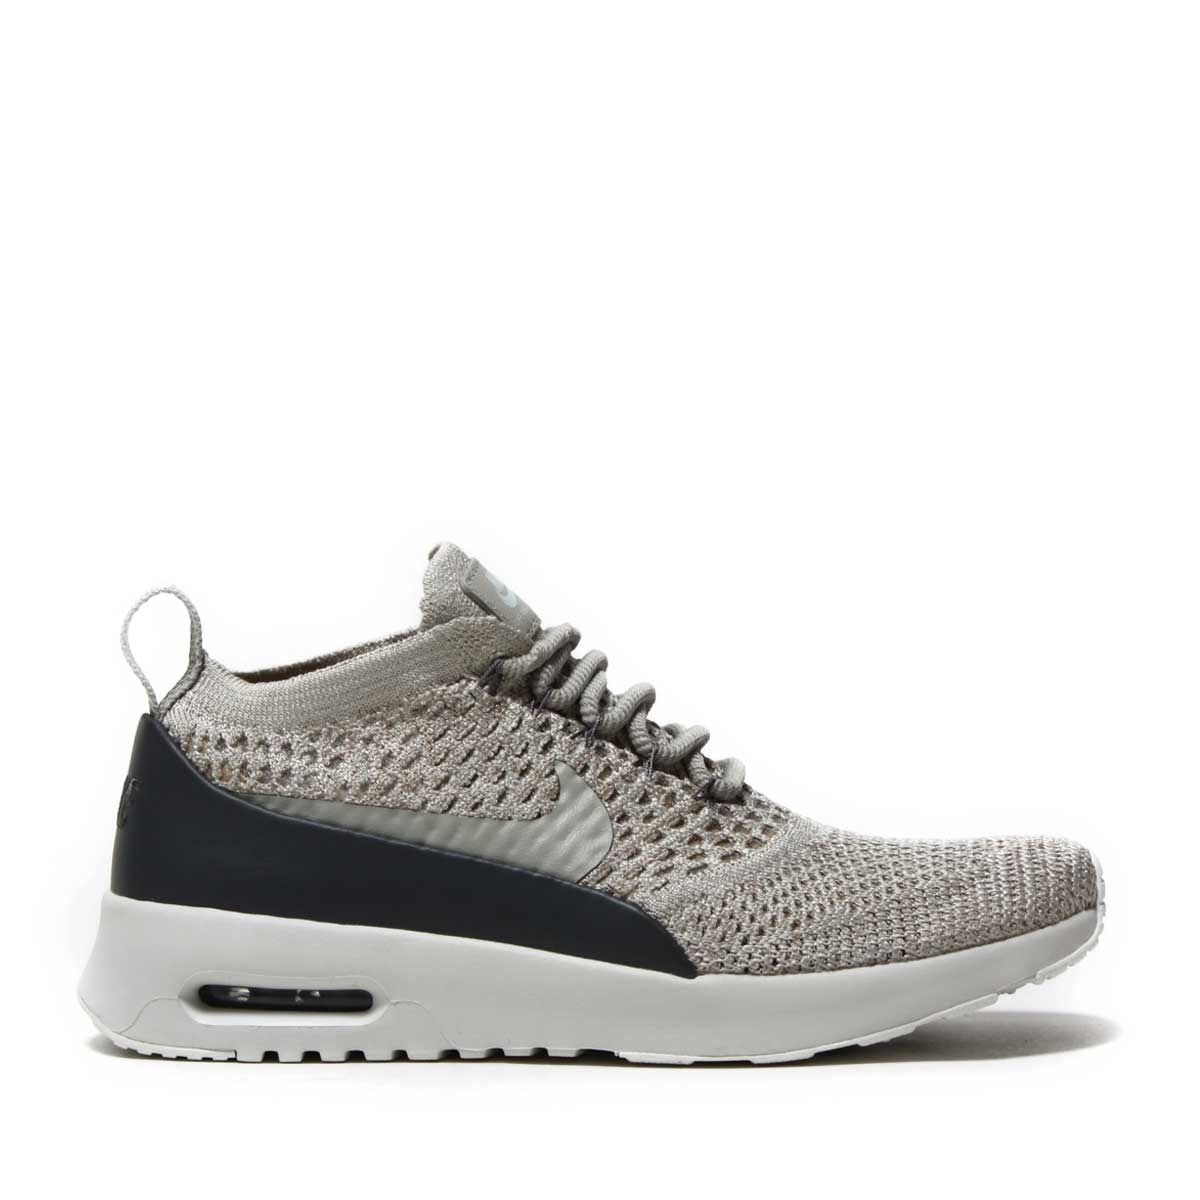 f6494273c6 ... NIKE W AIR MAX THEA ULTRA FK (Nike women Air Max Shea ultra FK) ...